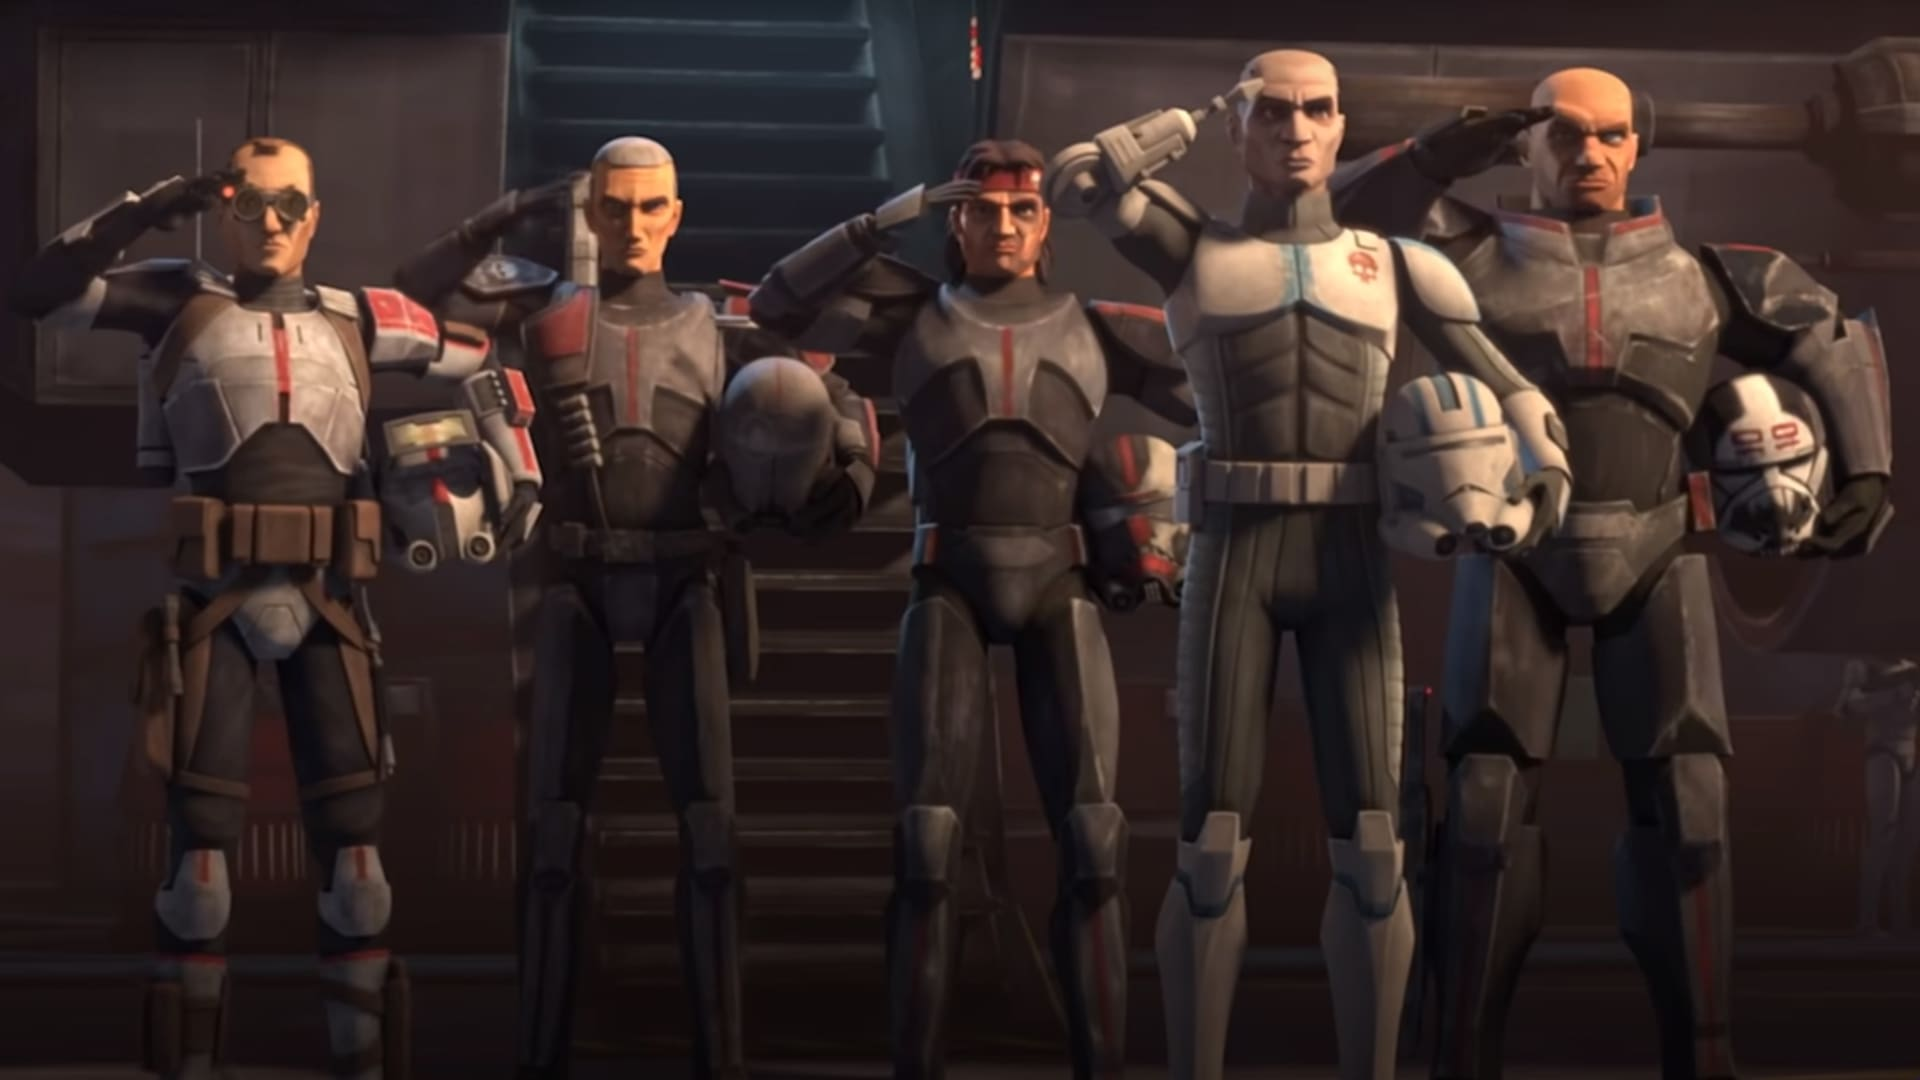 When we last saw the Bad Batch in Star Wars: The Clone Wars